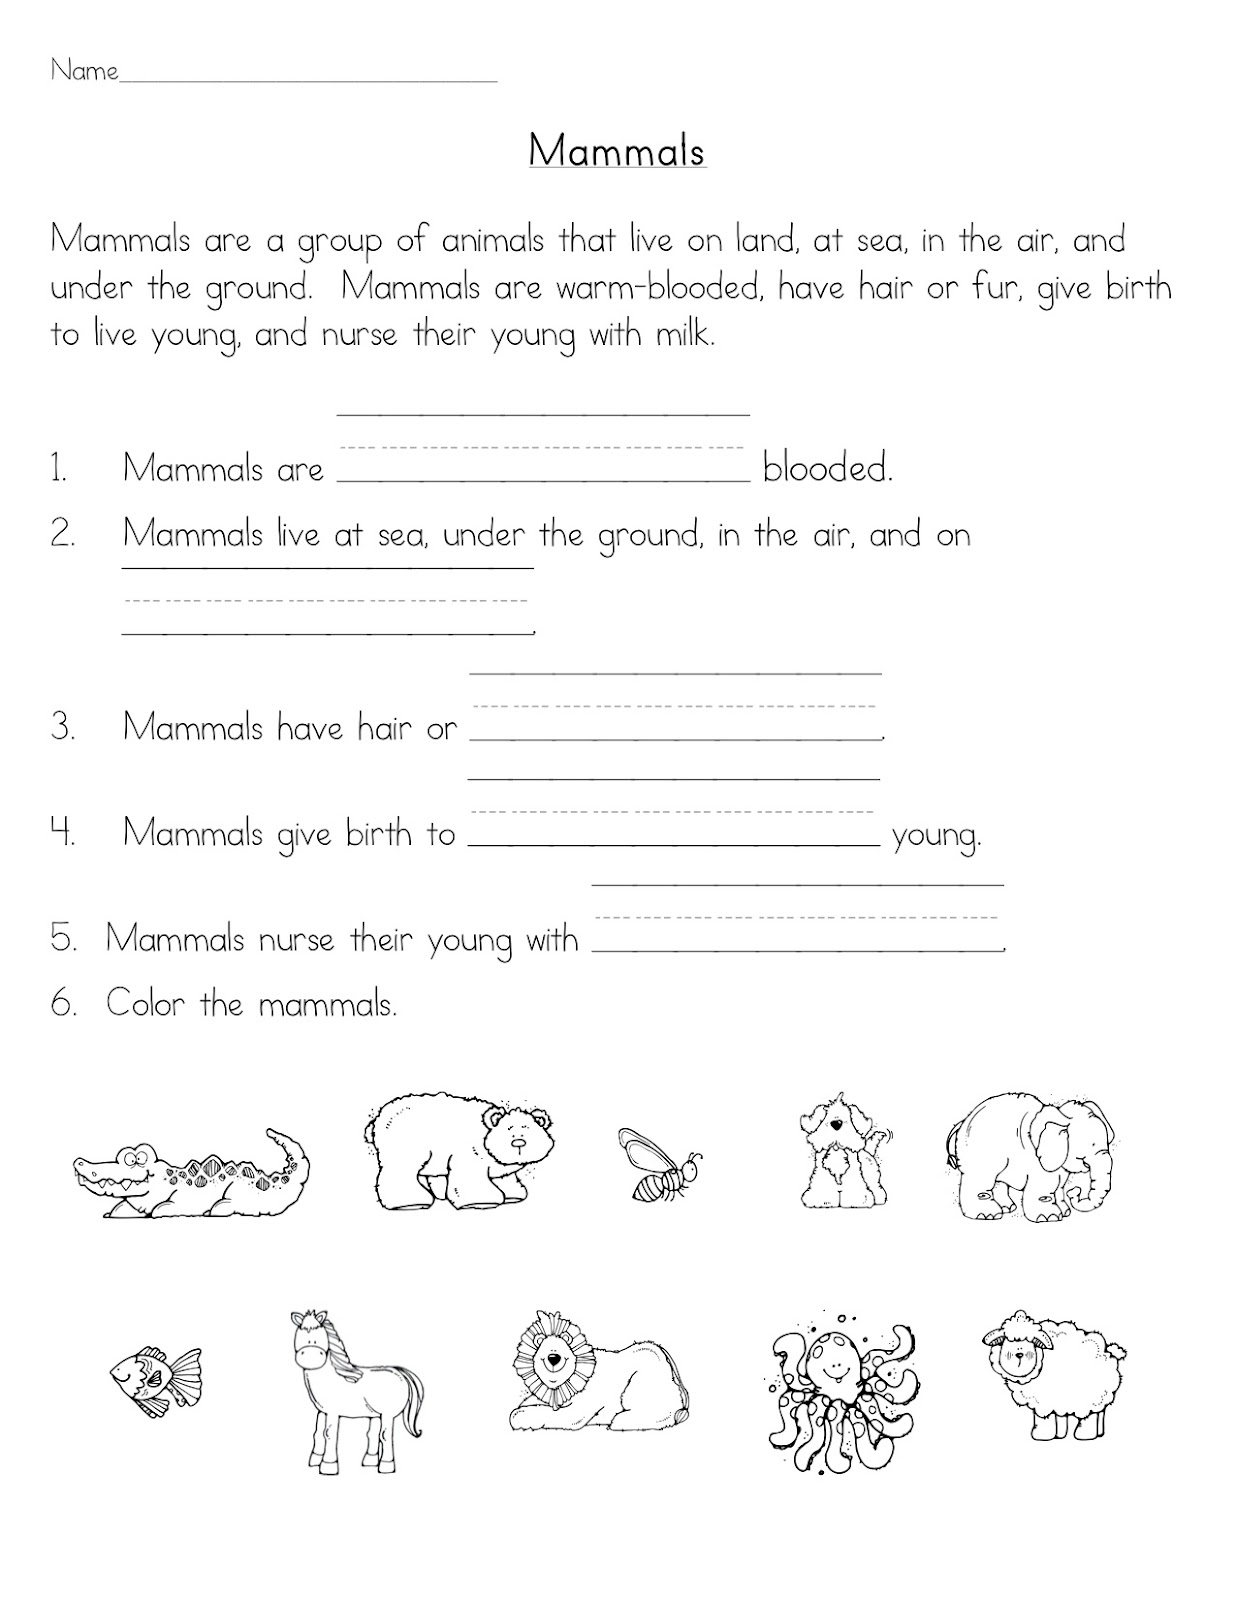 Free Worksheet Mammal Worksheets teaching blog addict mammals we are learning about in science this week with a special focus on bears here is worksheet that used right at the very beginning of unit